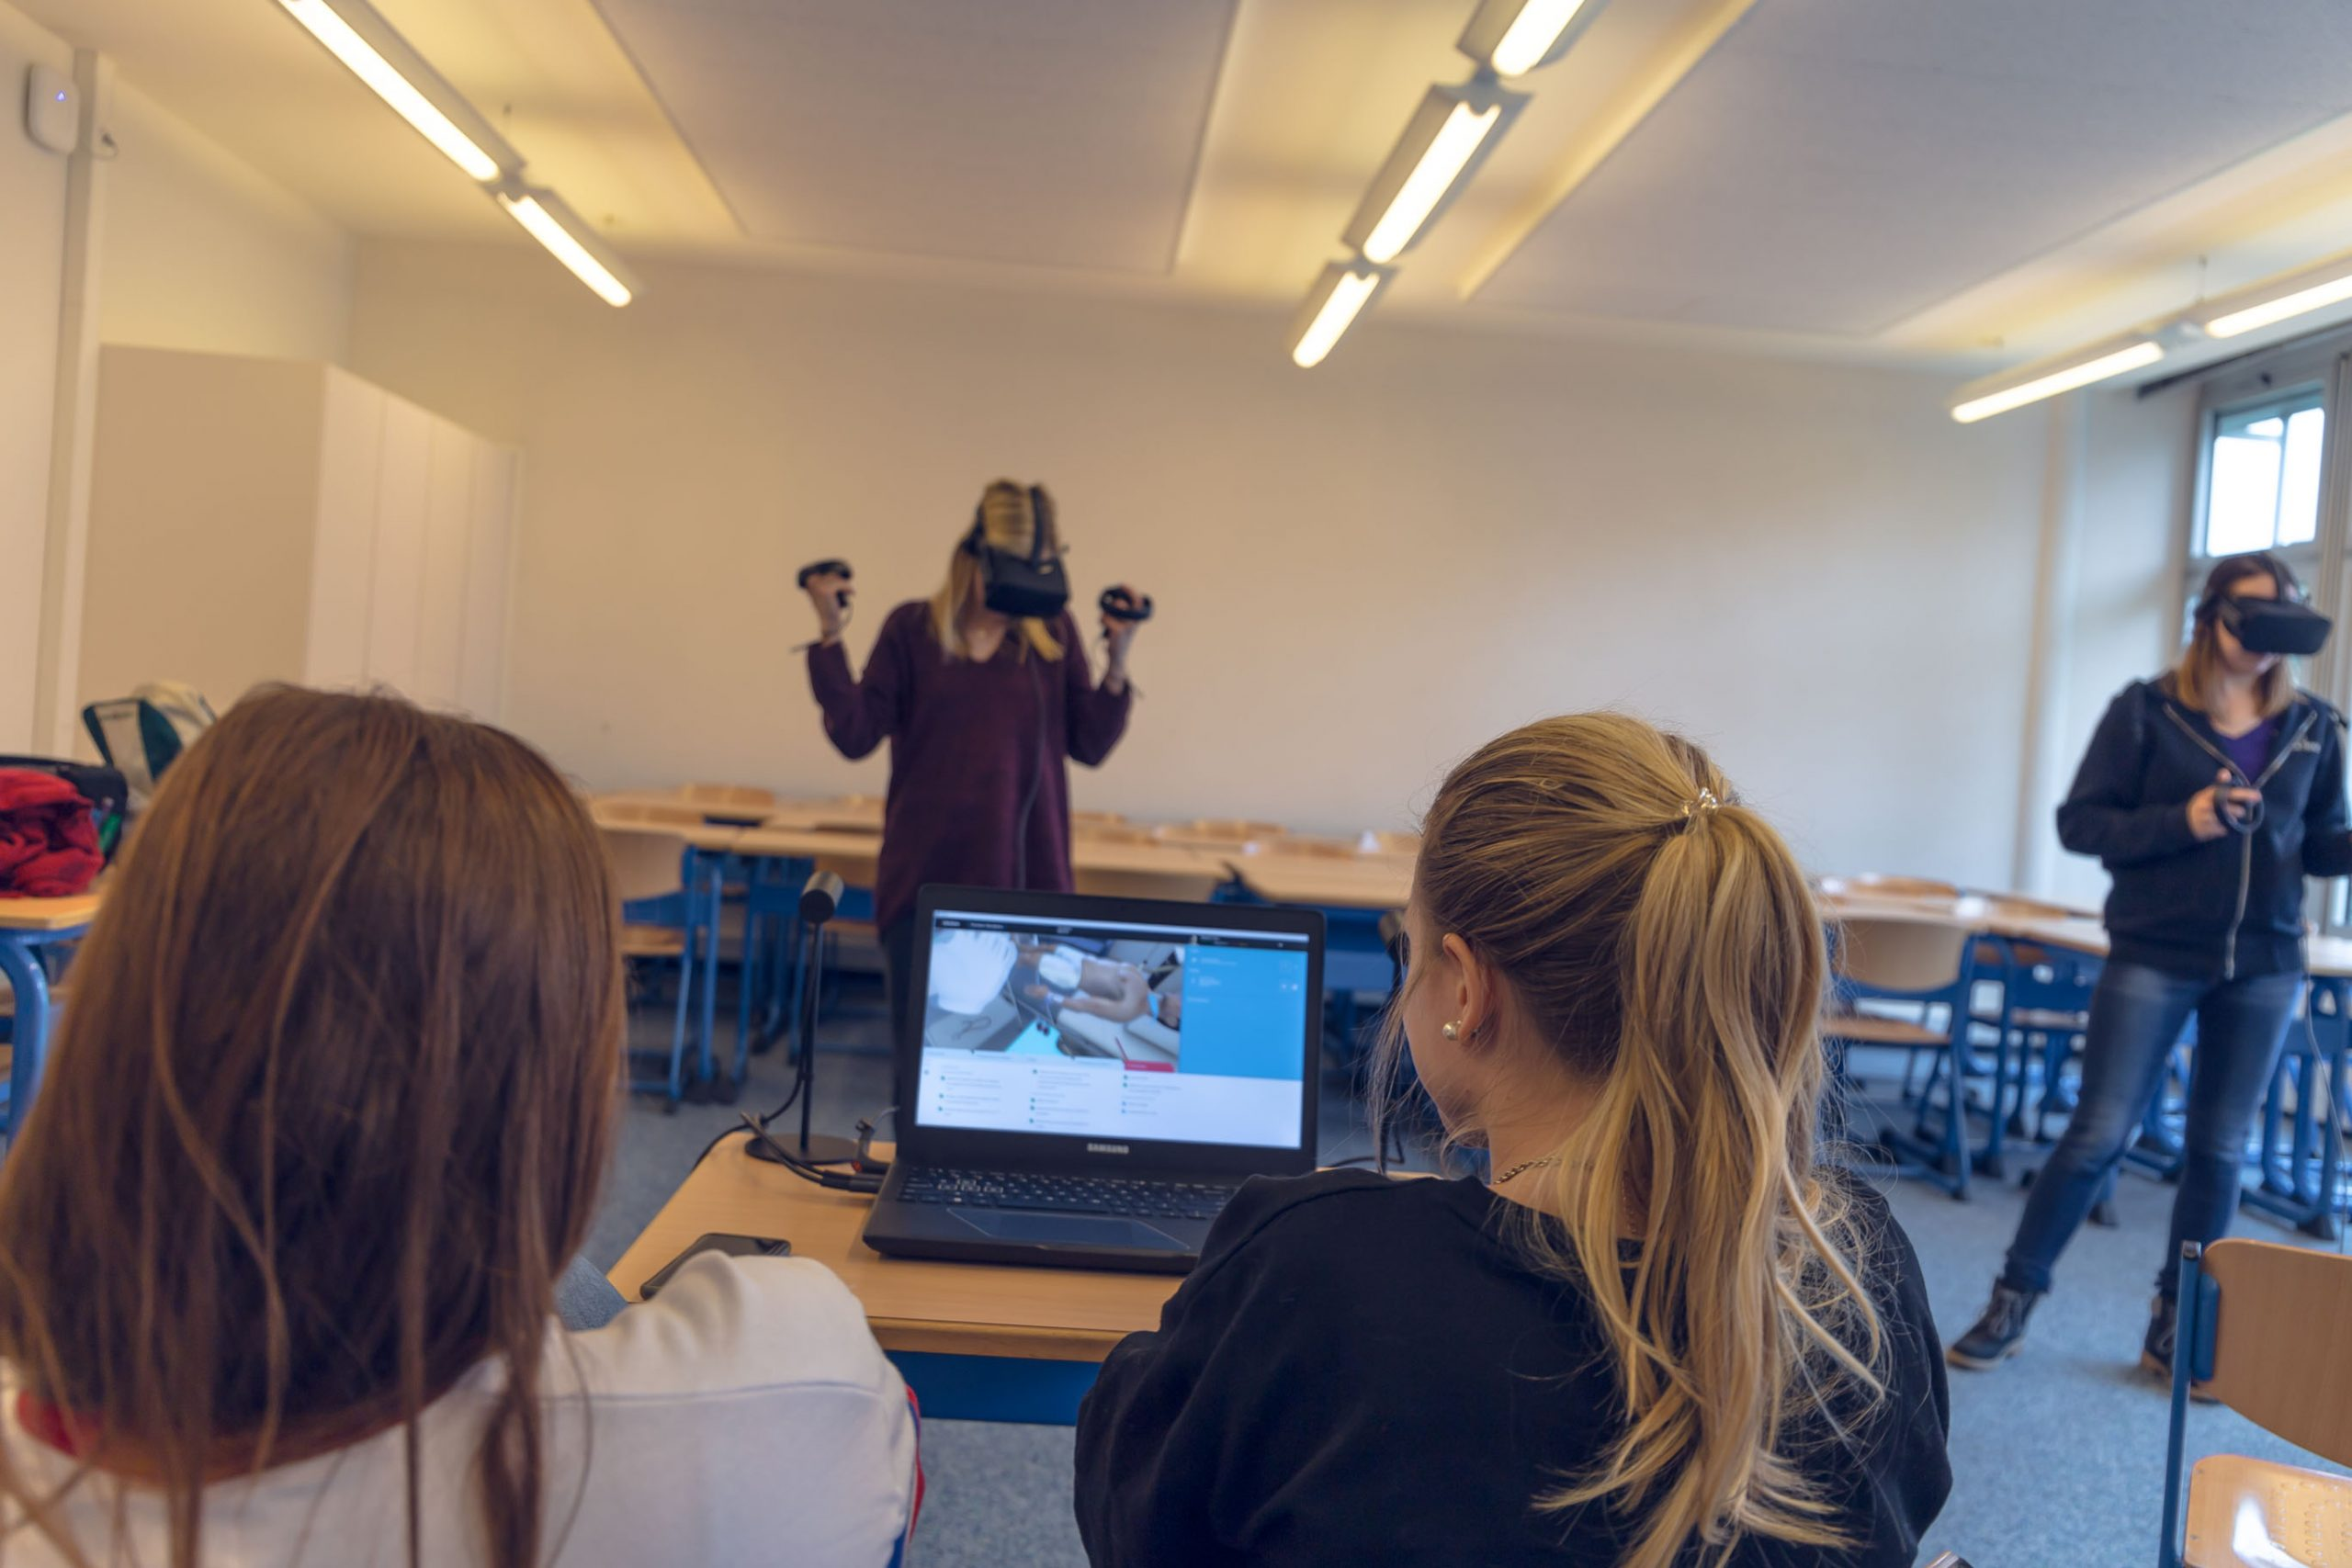 Using Immersive VR Simulation to Provide A Structured Clinical Learning Experience